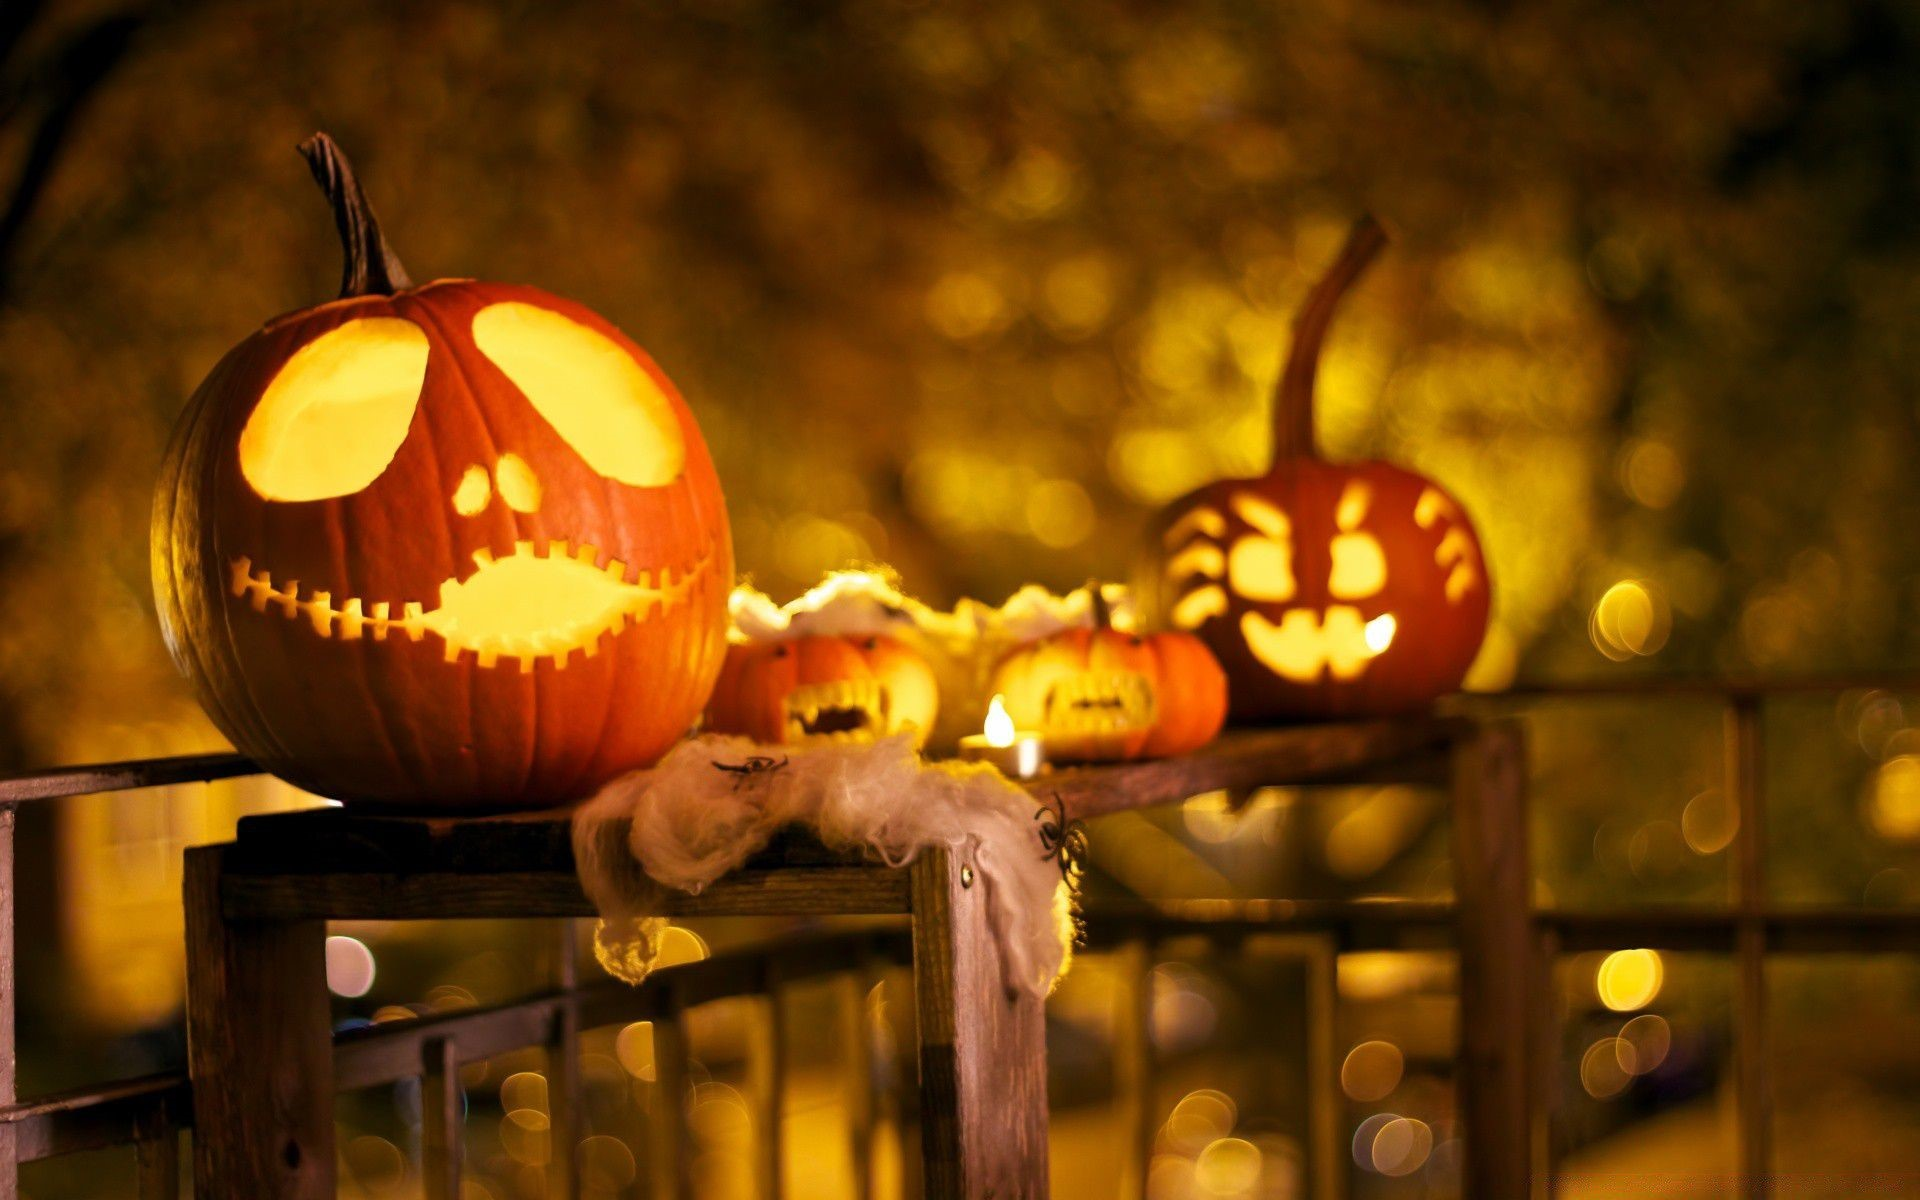 Halloween Pumpkin Work HD Wallpaper